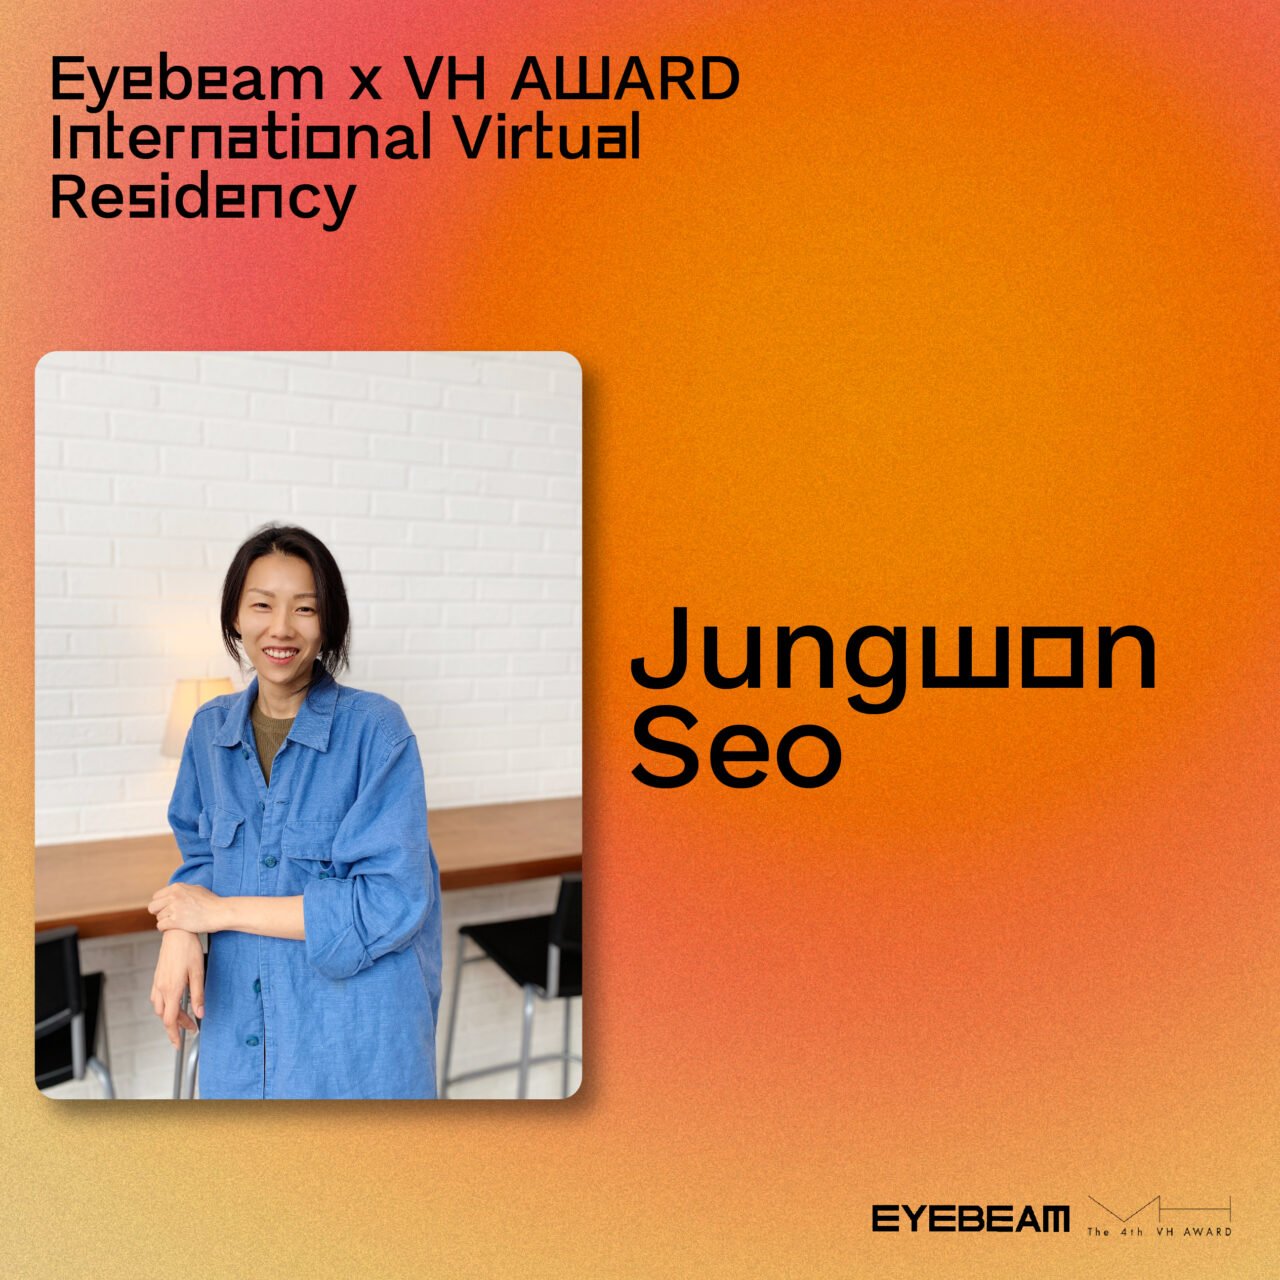 Gradient background with a photo of Jungwong in the foreground.